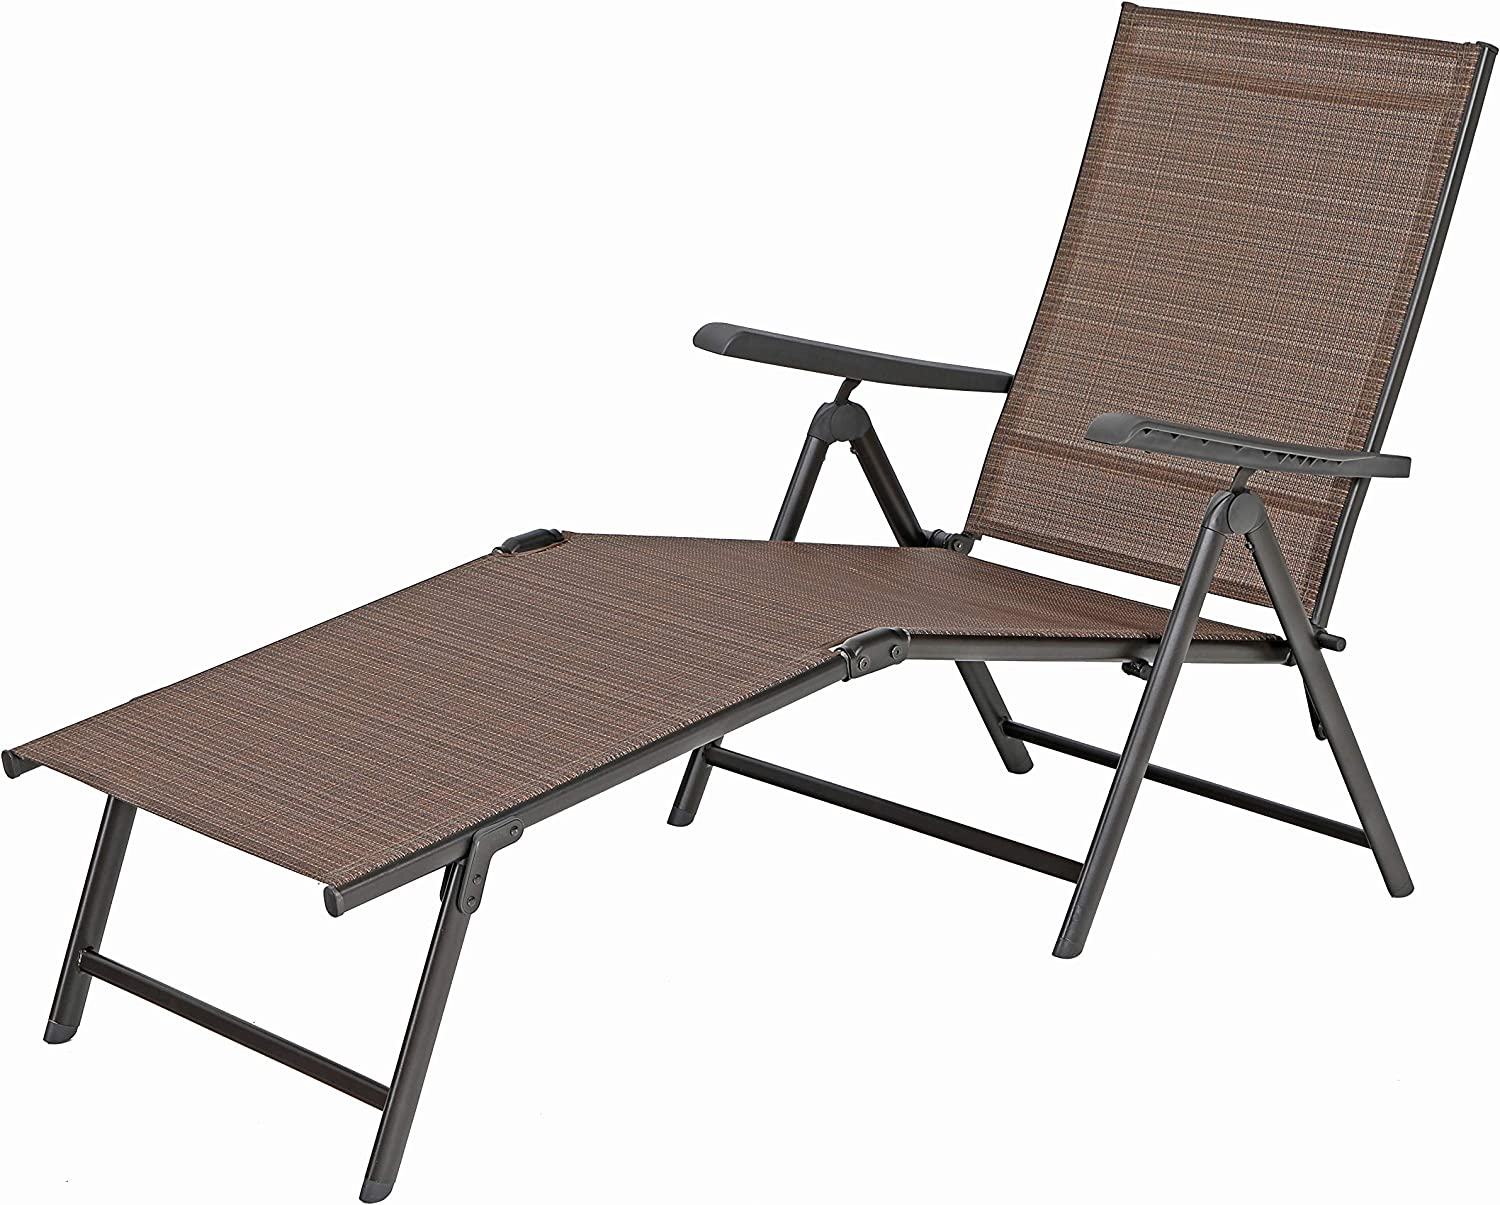 Camp Field Camping and Room Bungee Folding Dish Chair for Room Garden and Outdoor Pink